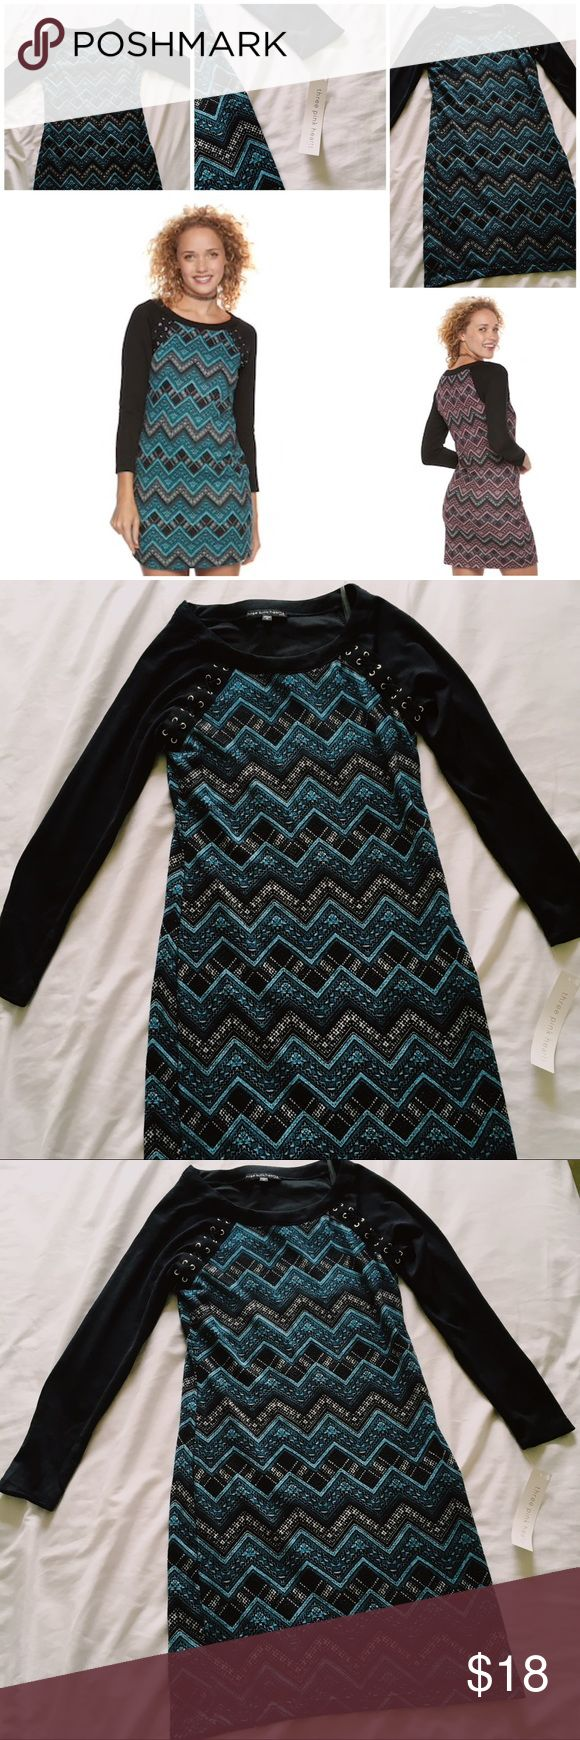 """NWT Three Pink Hearts Black and Blue Chevron Dress Cute mini dress for sale. Found with one of the tags still on it. Chevron with solid black sleeves. Scoopneck with lace up raglan sleeves. Unlined. 31"""" shoulder to hem length.  Tags: Mini dress, grunge, winter, Three pink hearts Dresses Mini"""